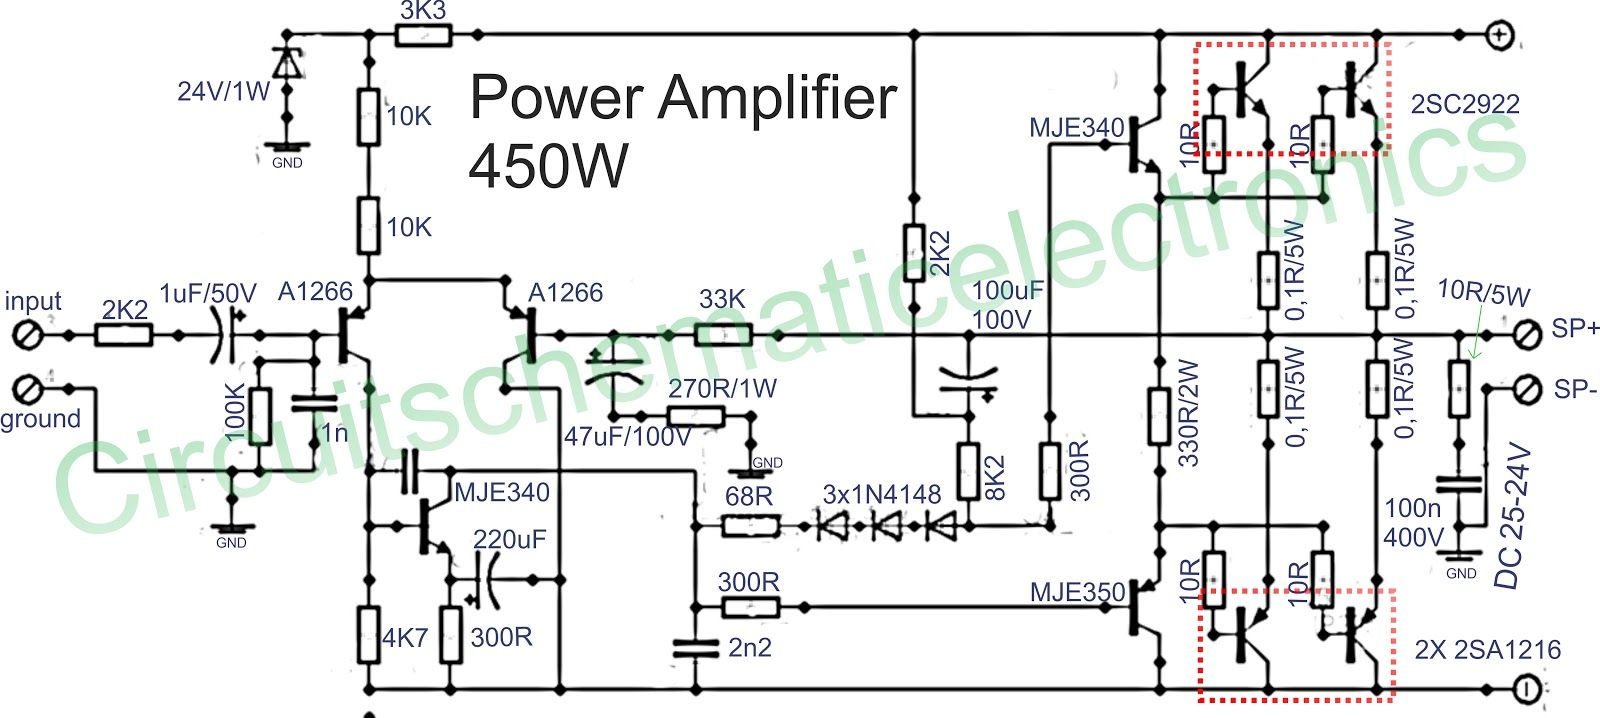 hight resolution of power amplifier 450w with sanken